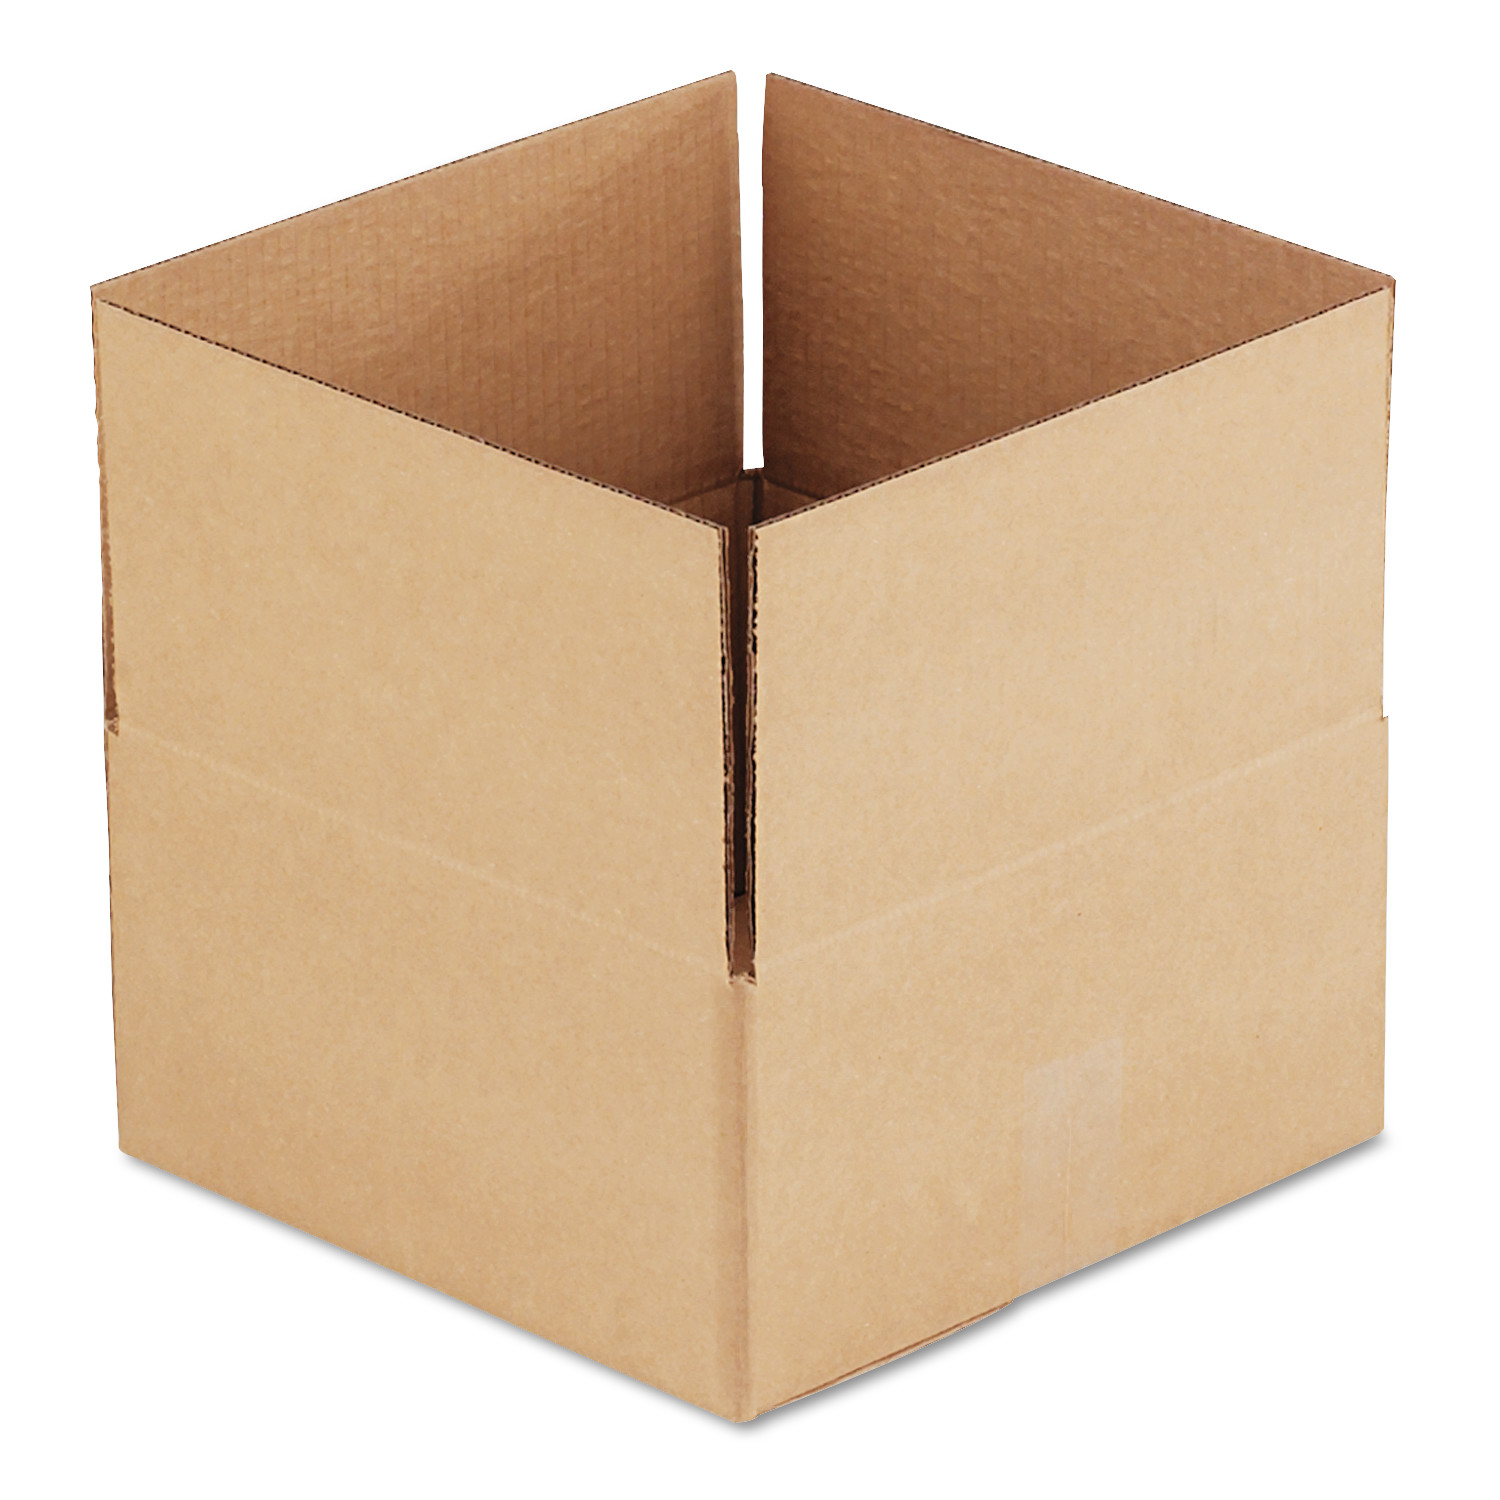 General Supply Brown Corrugated - Fixed-Depth Shipping Boxes, 12l x 12w x 6h, 25/Bundle -UFS12126